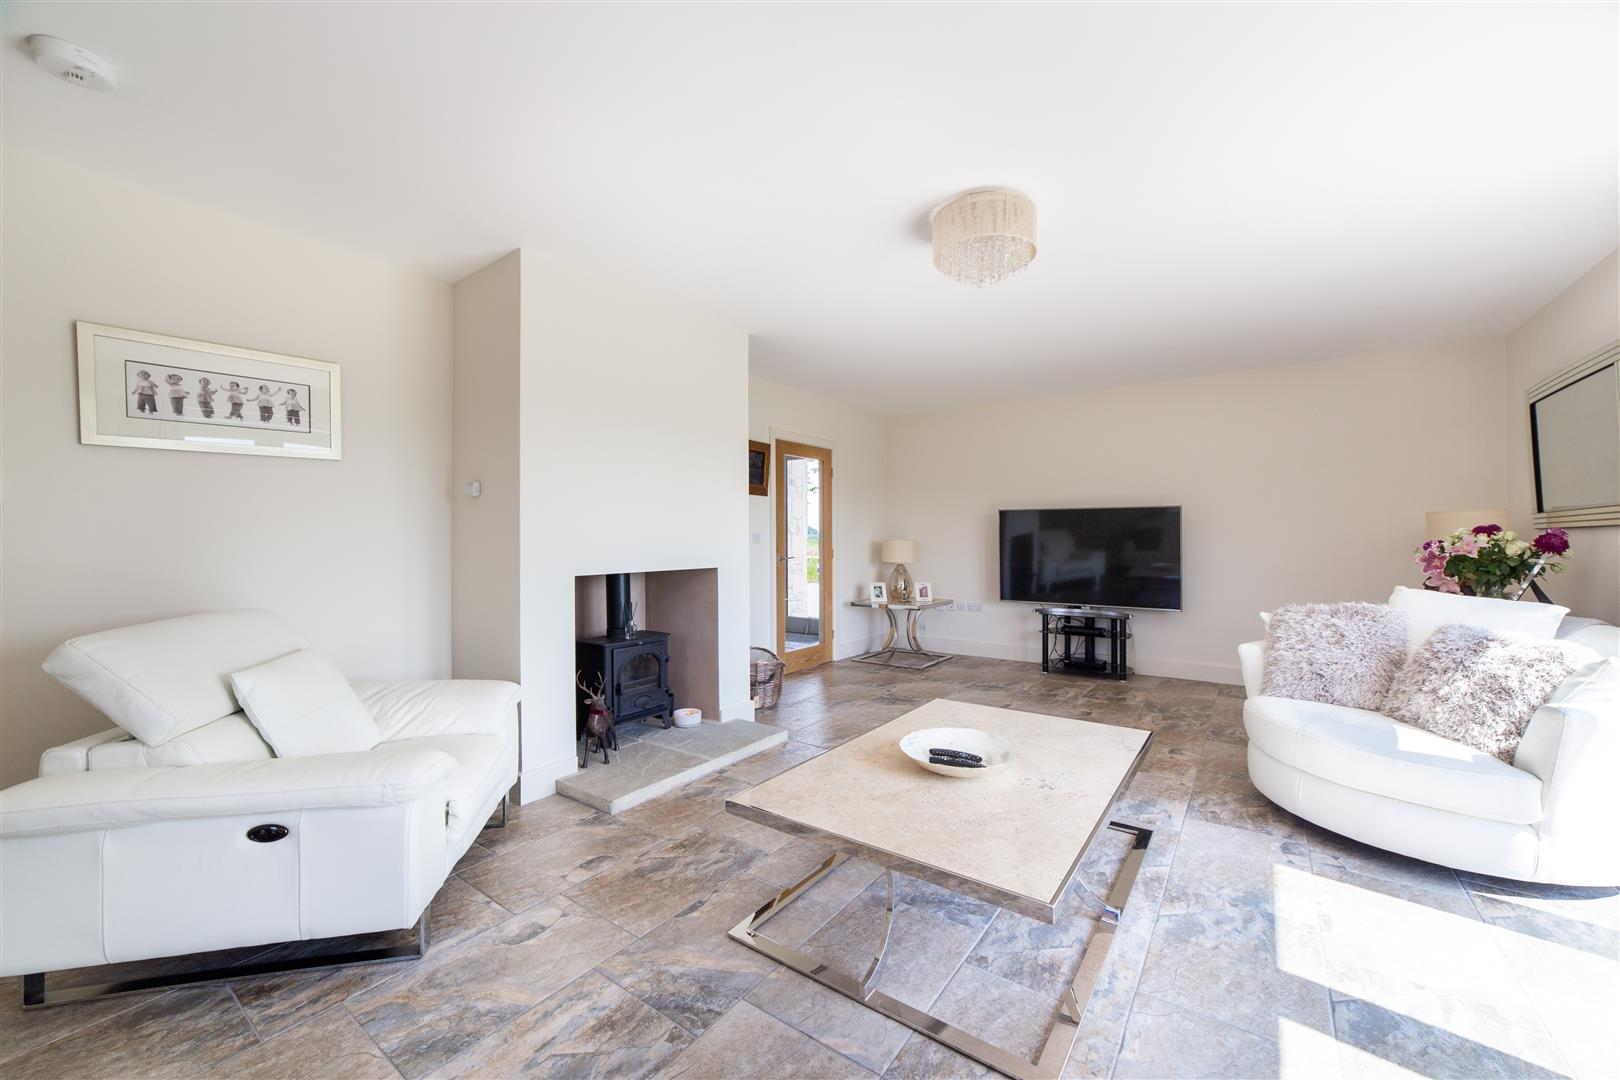 4 bed detached house for sale, Hexham 23